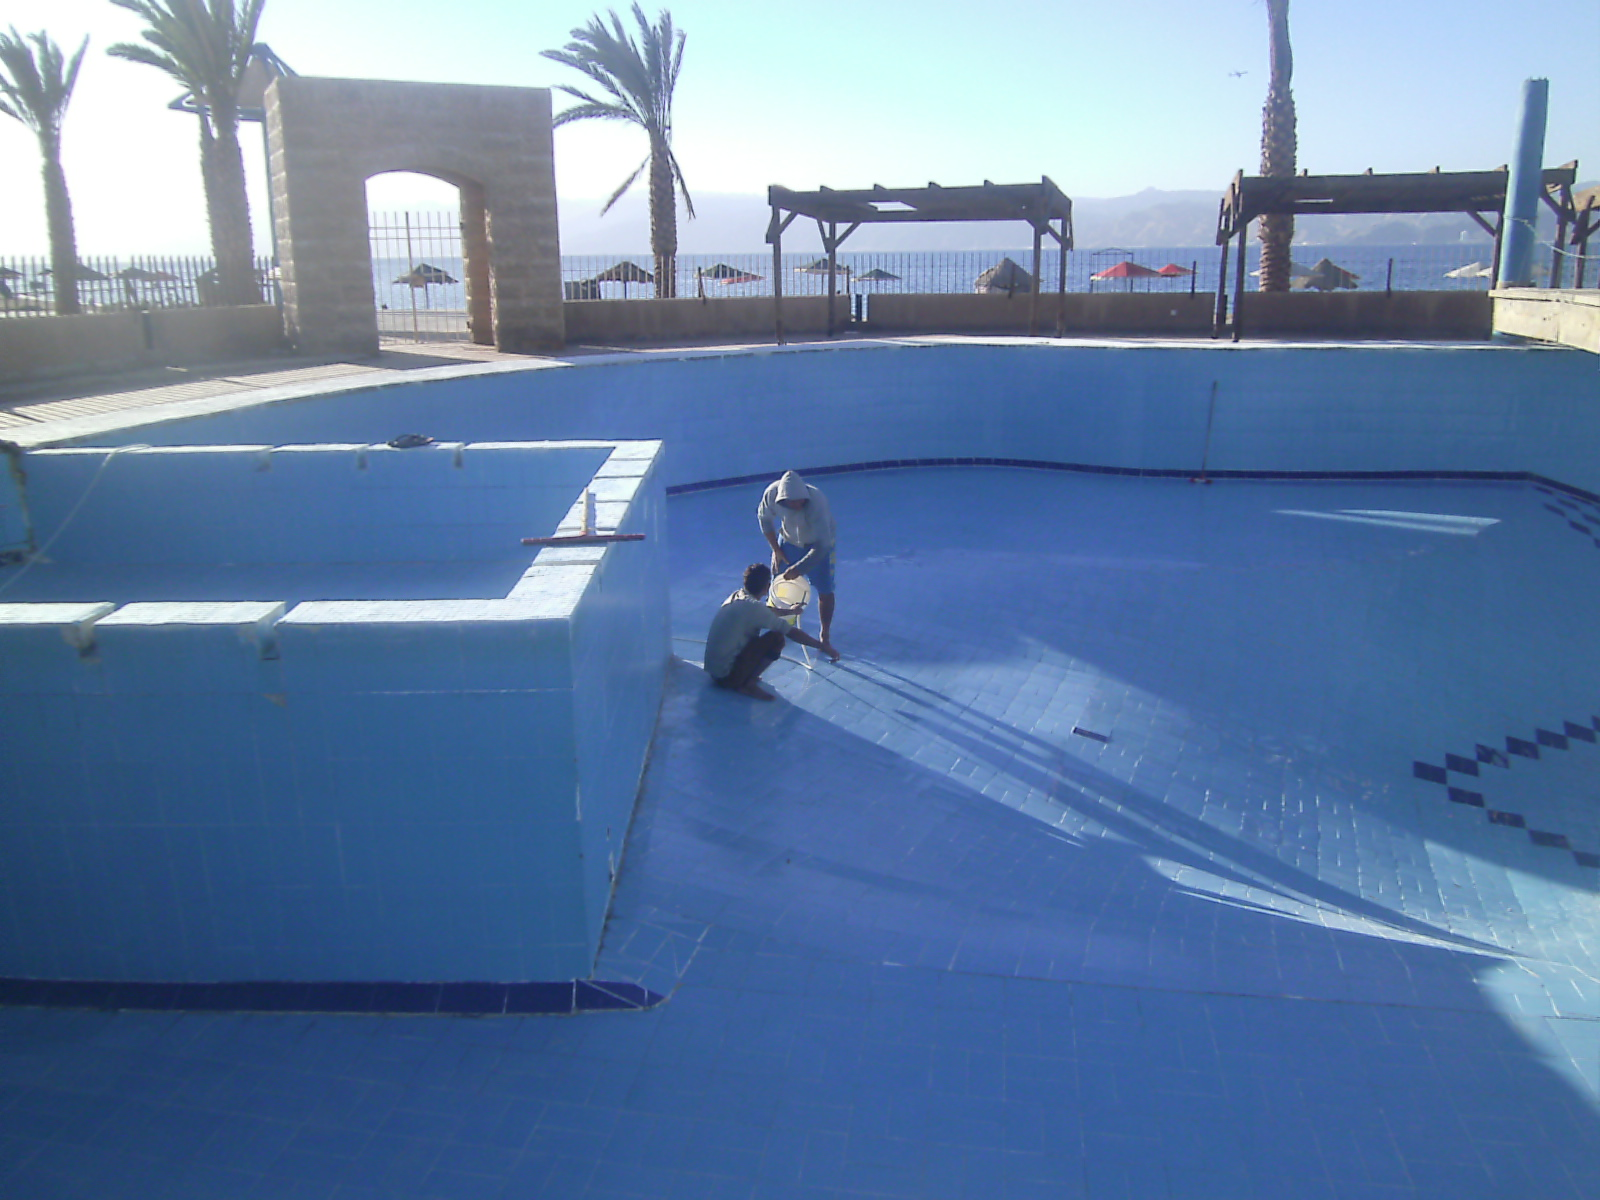 New pool at Club Murjan, Aqaba, Jordan